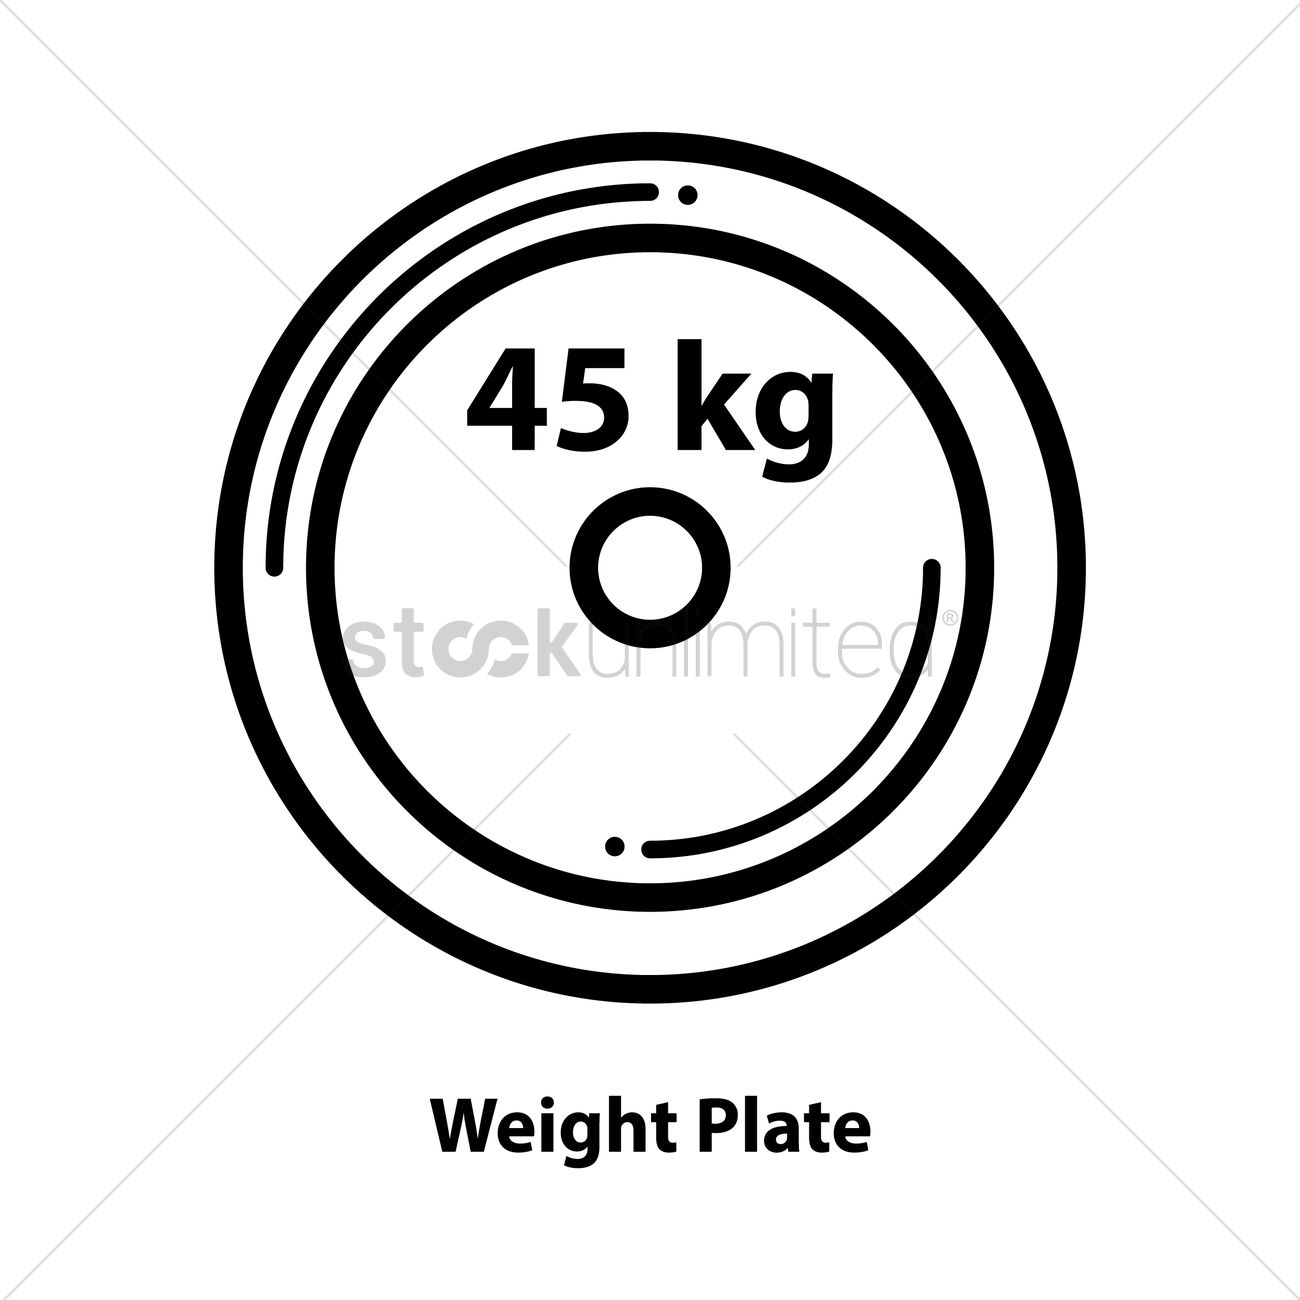 Weight Plate Vector Graphic-weight plate vector graphic-17